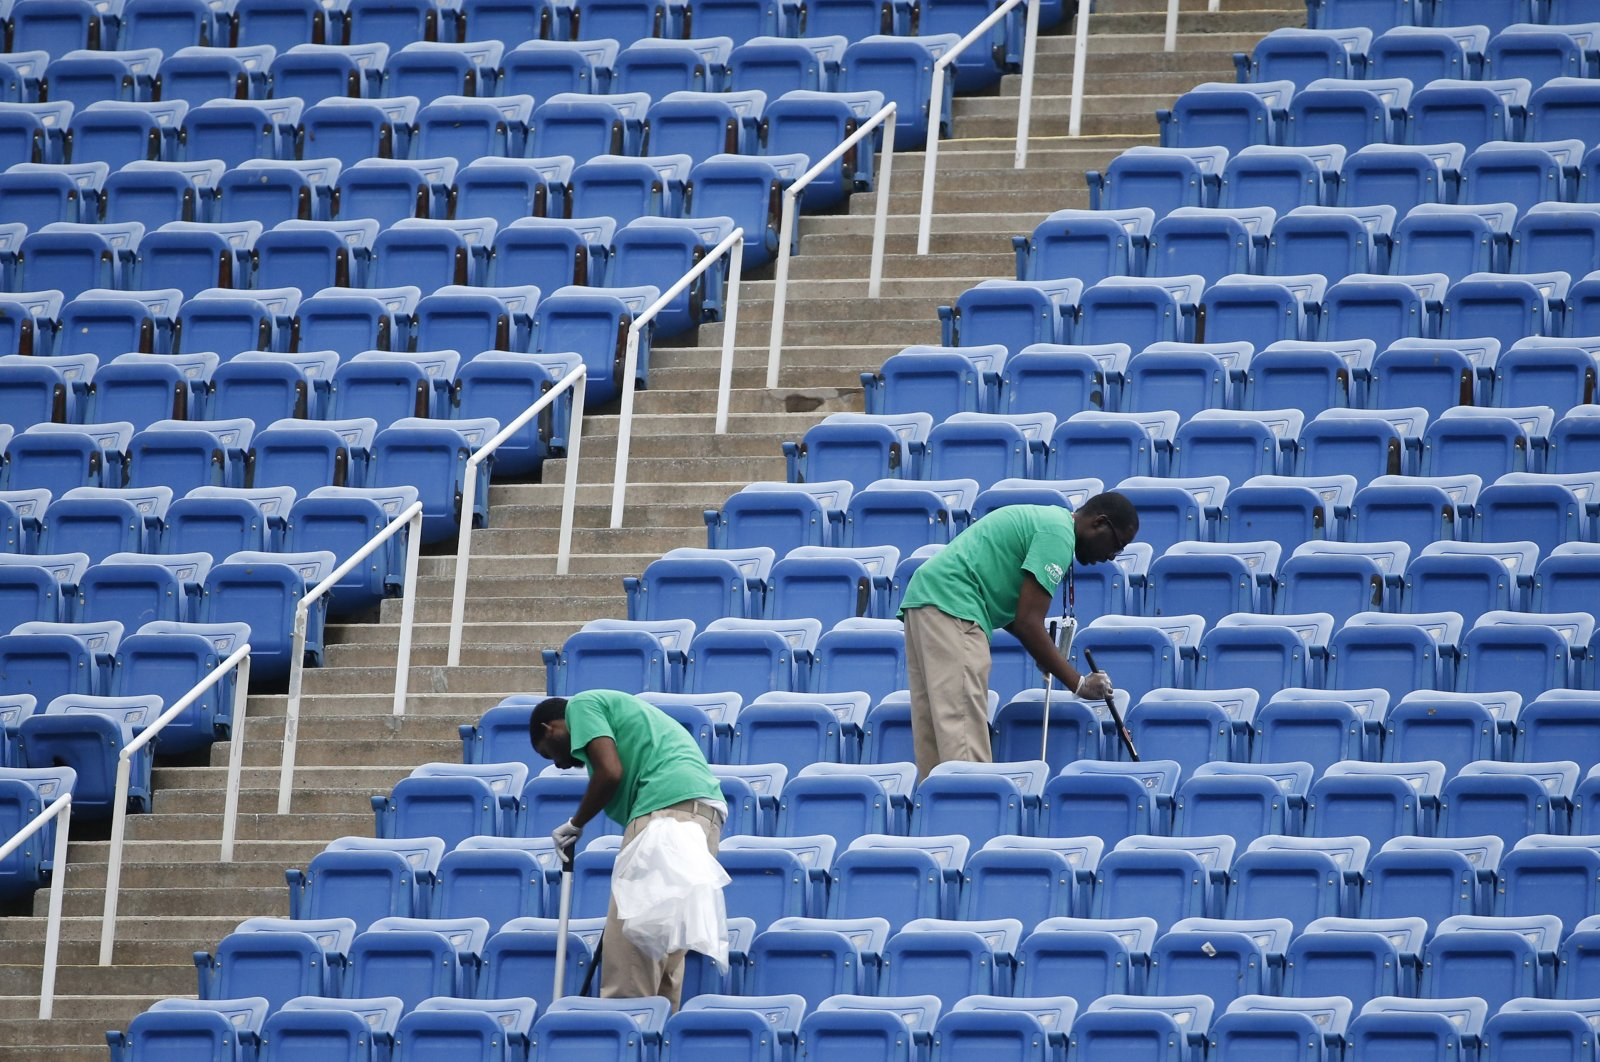 Workers clean the empty stands in Arthur Ashe Stadium after the women's semifinal matches were postponed because of rain at the U.S. Open tennis tournament in New York, U.S., Sept. 10, 2015. (AP Photo)